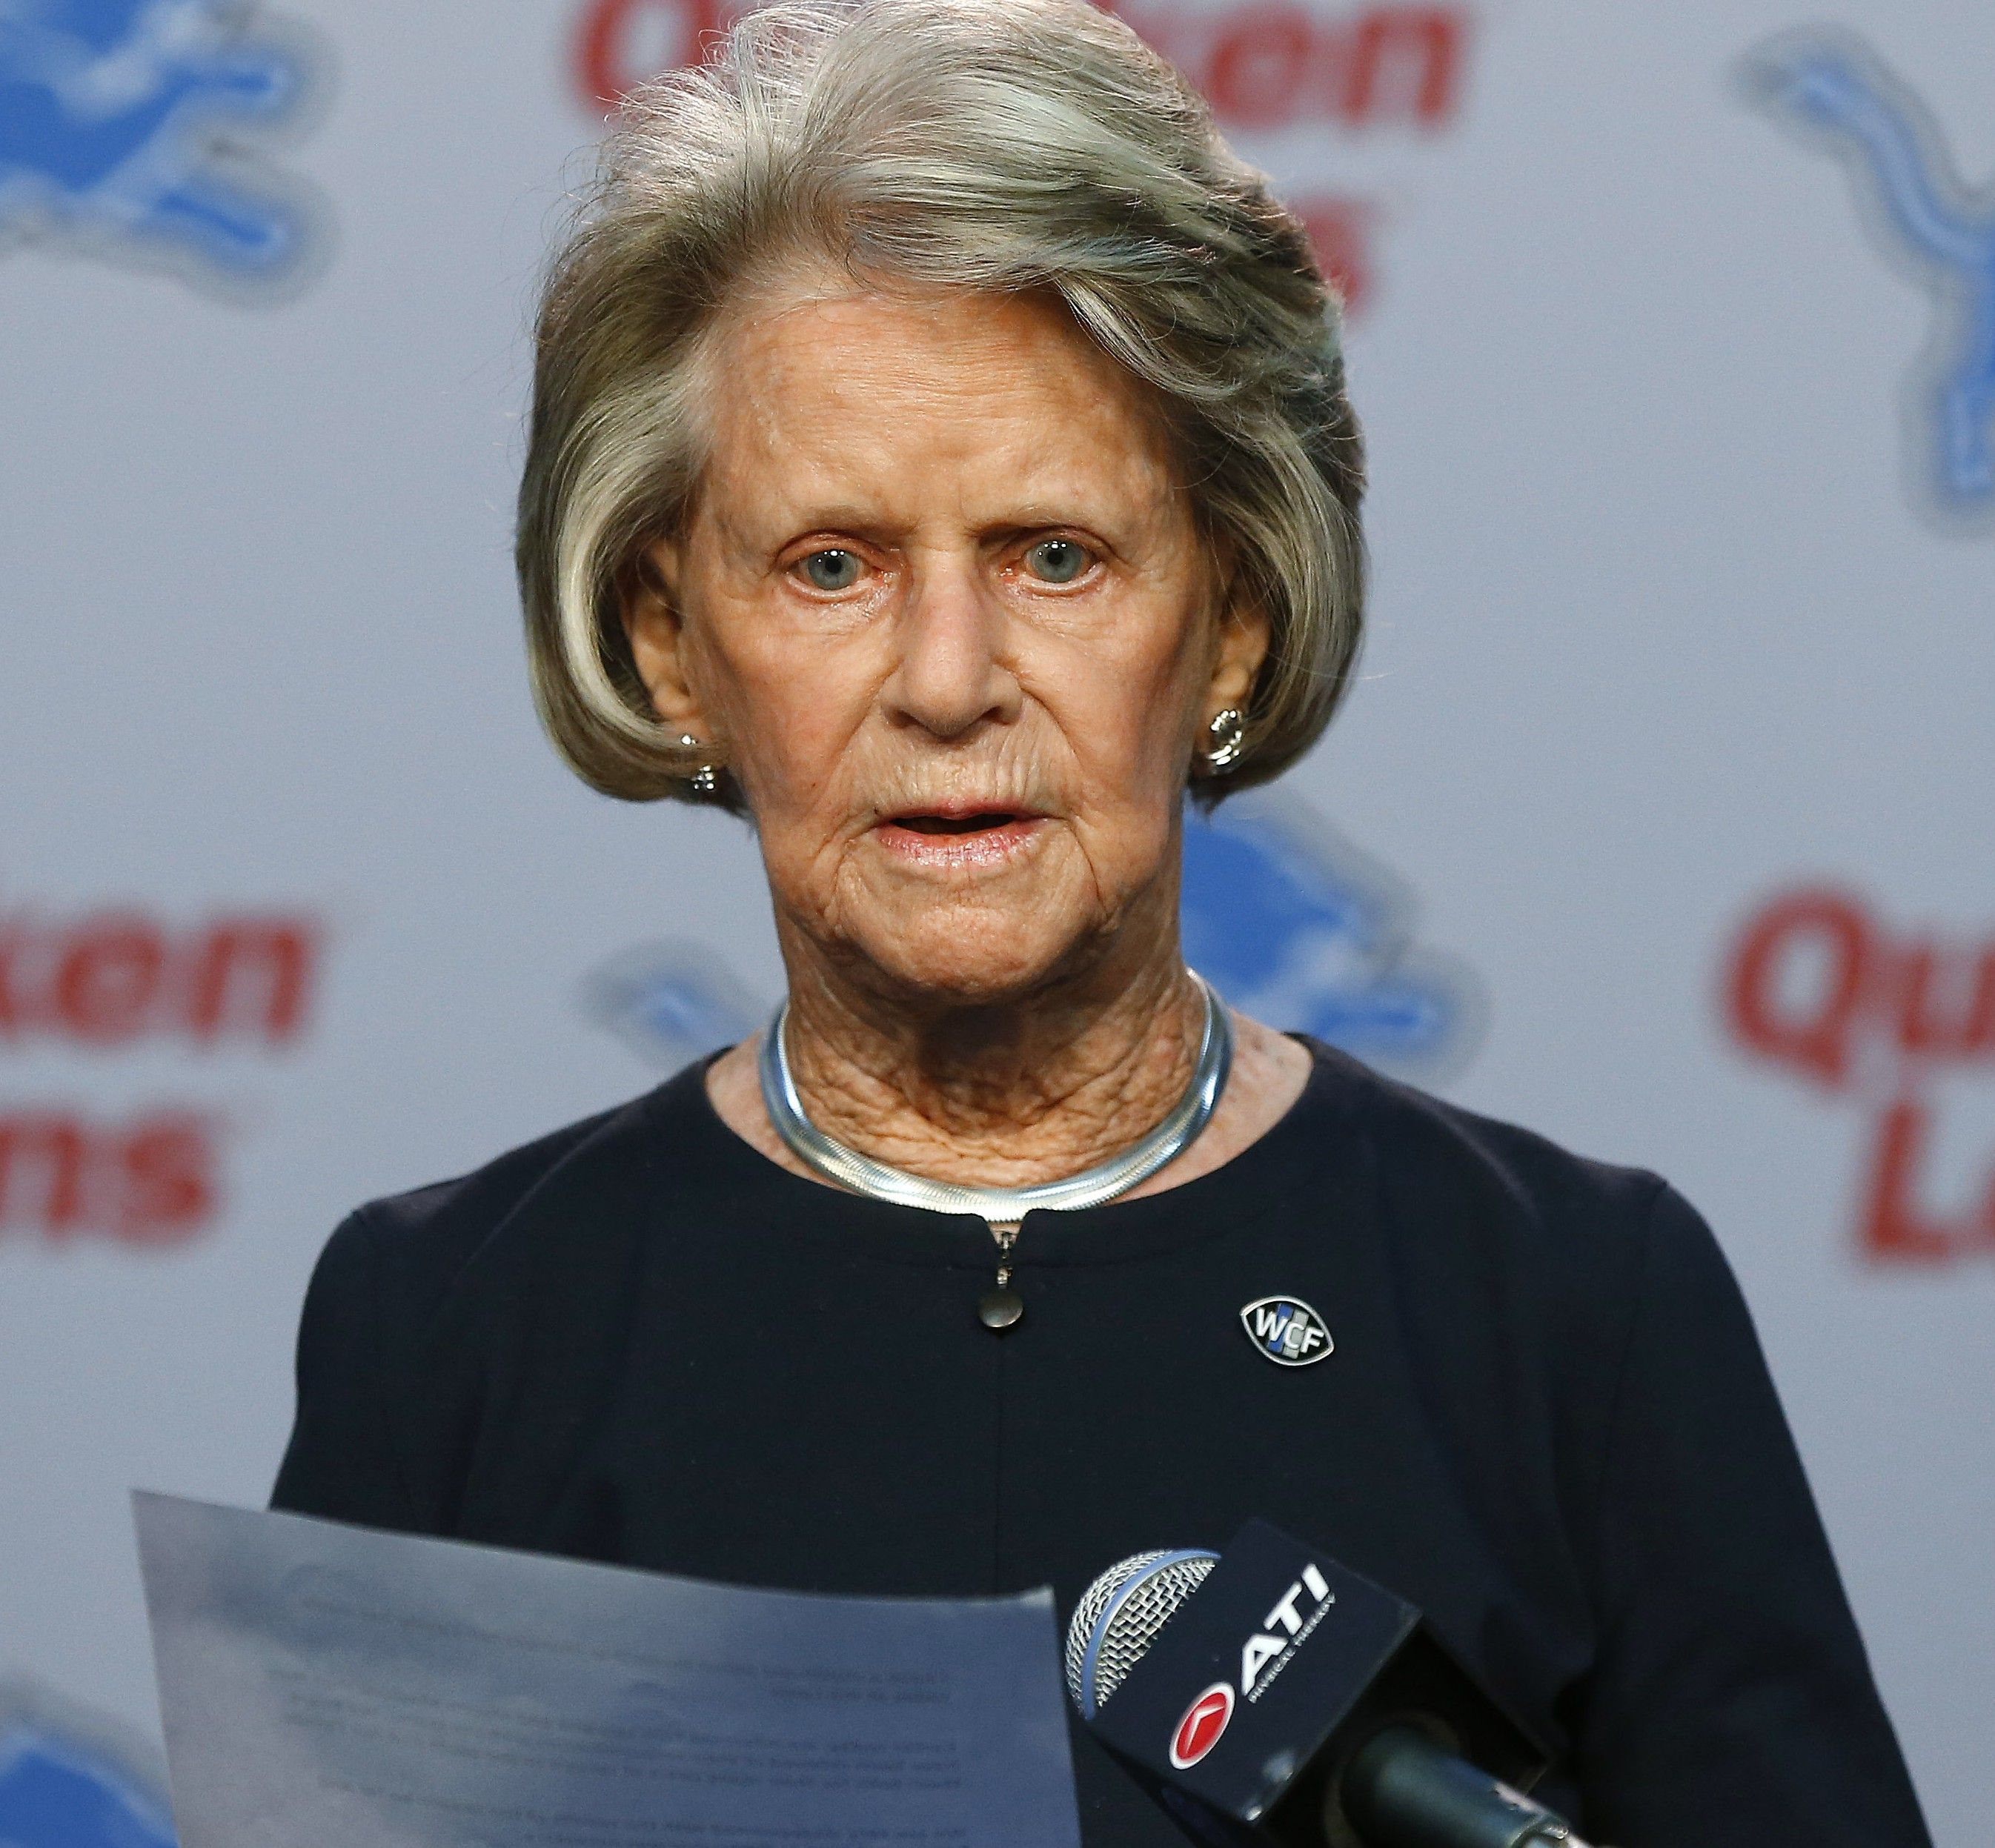 Lions Say Ford Family Has A Succession Plan In Place Martha Ford Ford Succession Planning